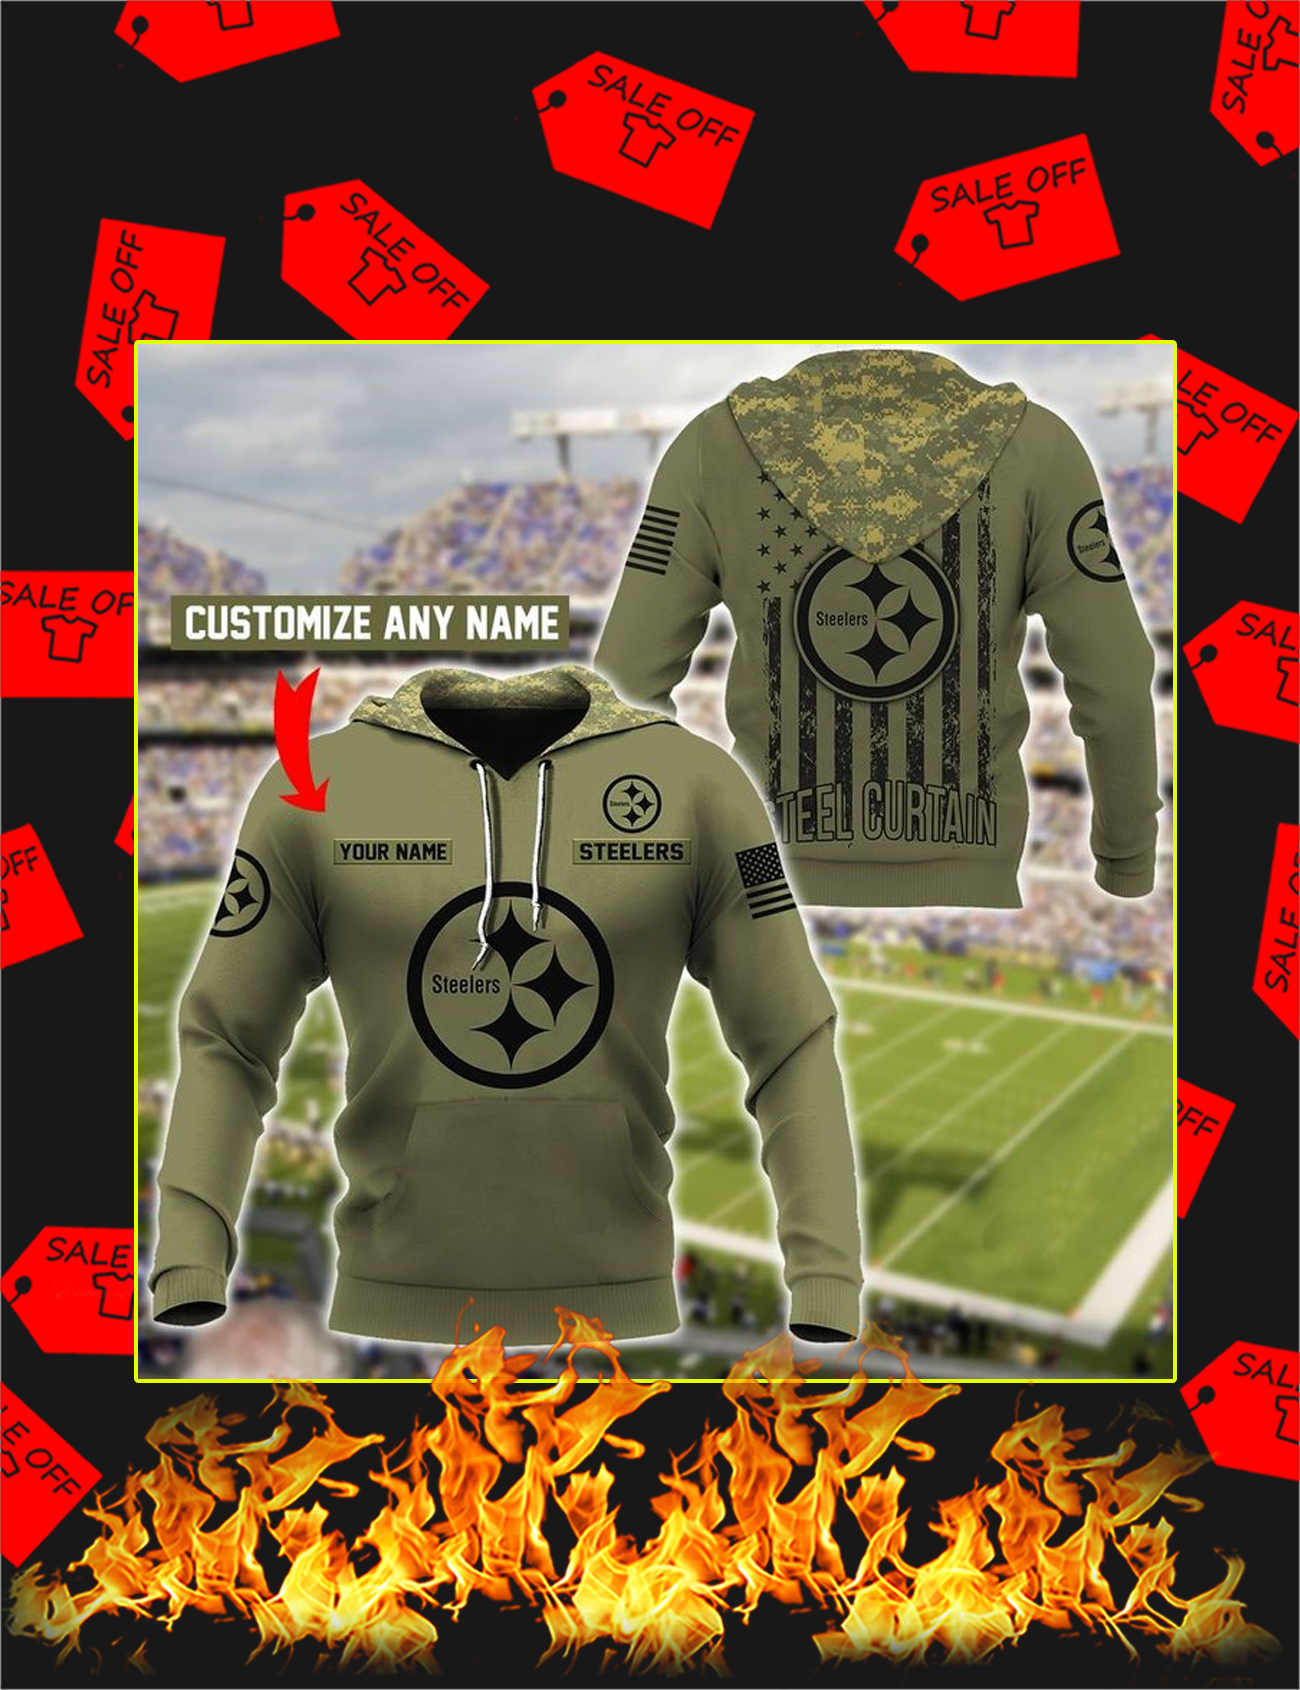 Steelers Customize Custom Name 3D Hoodie - Size M